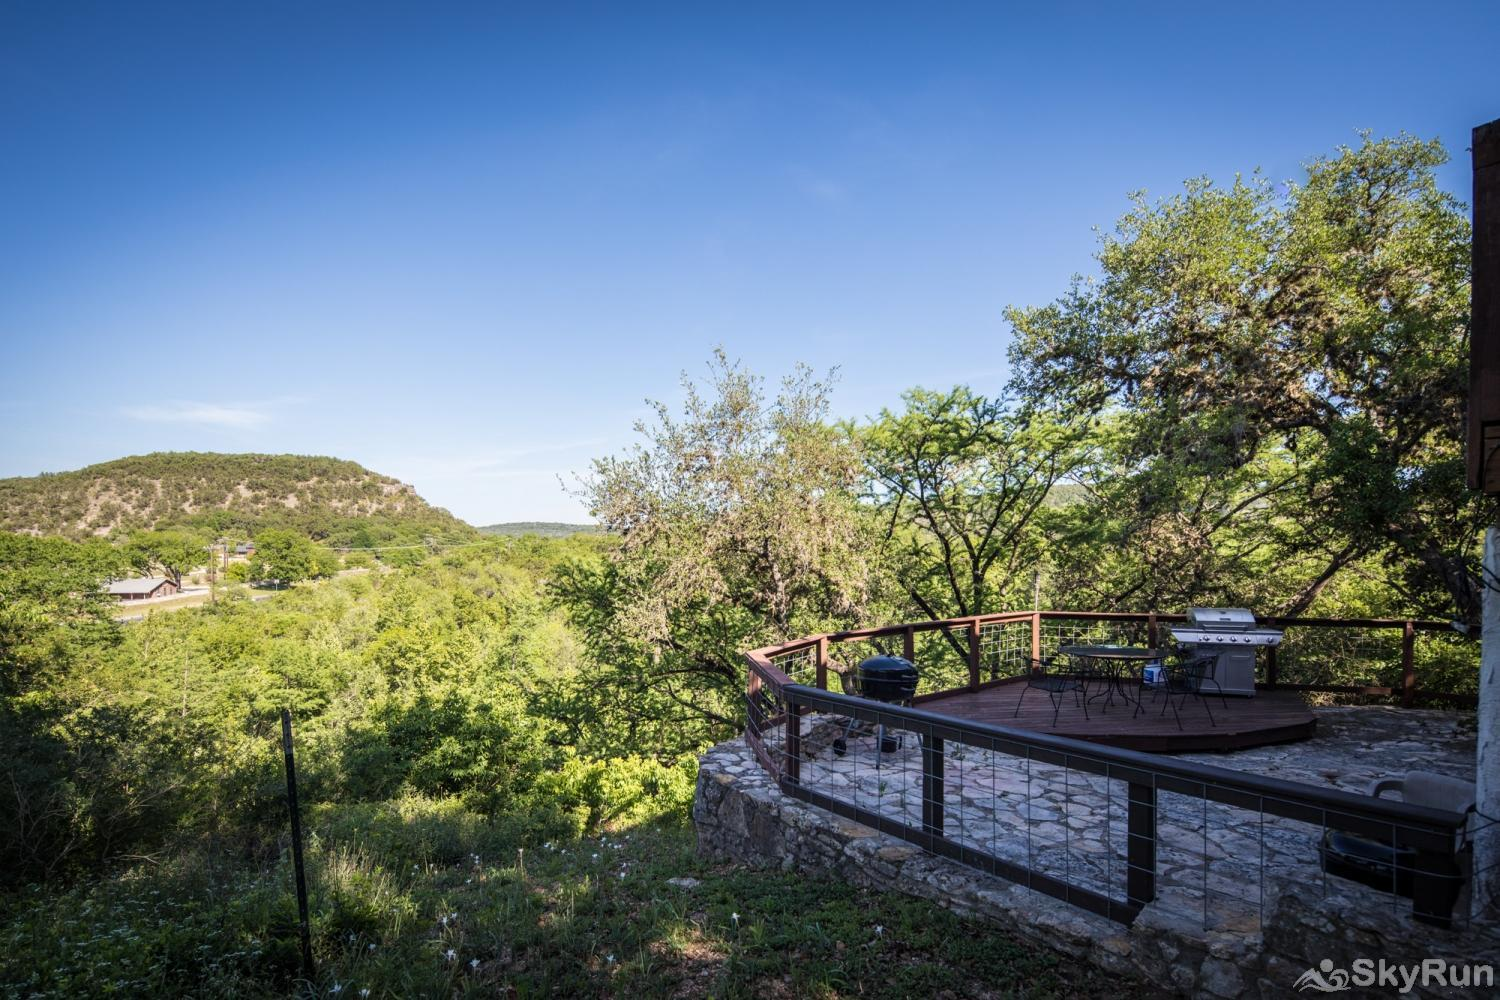 RICKS RIVER HAUS Guadalupe River and hillside view from the patio